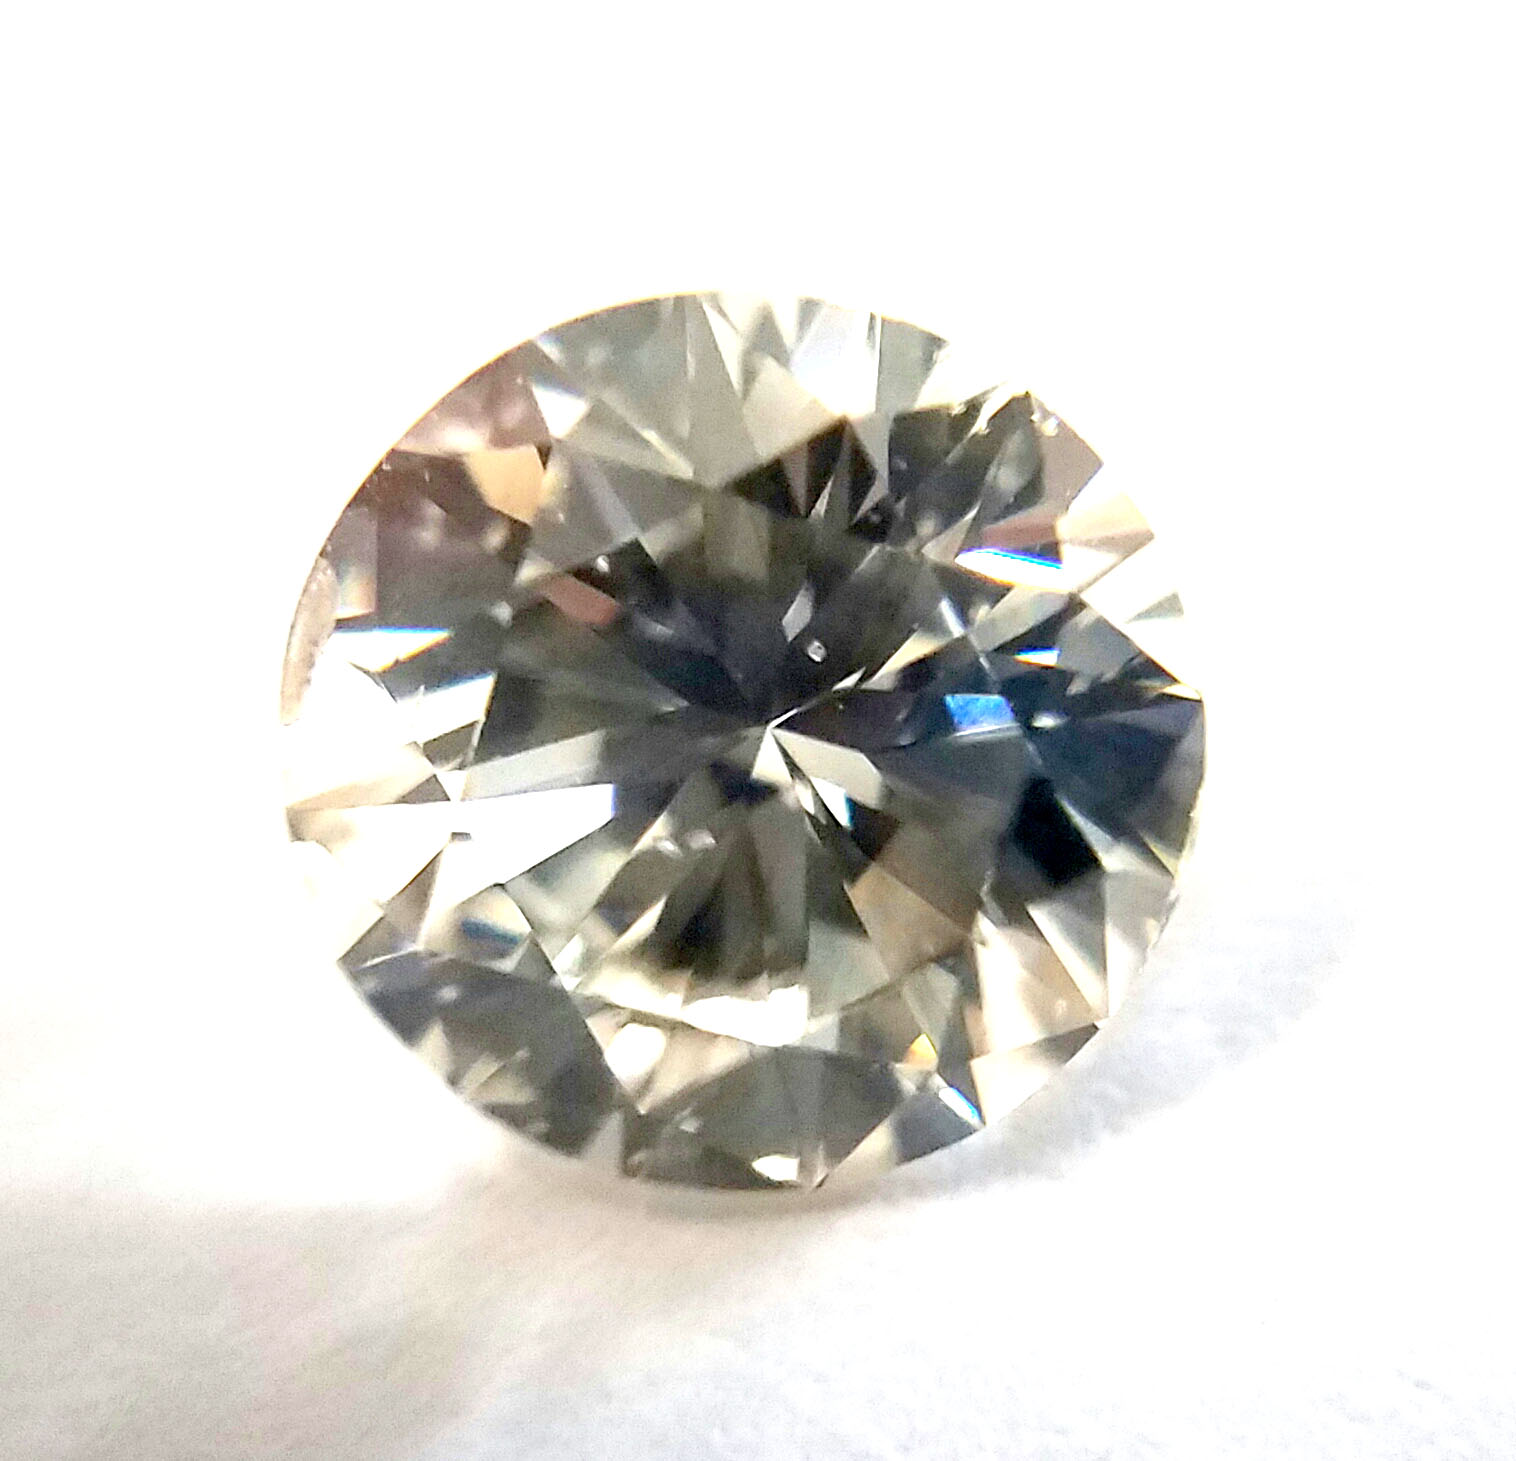 Amgad Wholesaler of GIA Certified Natural Fancy Colored Diamonds